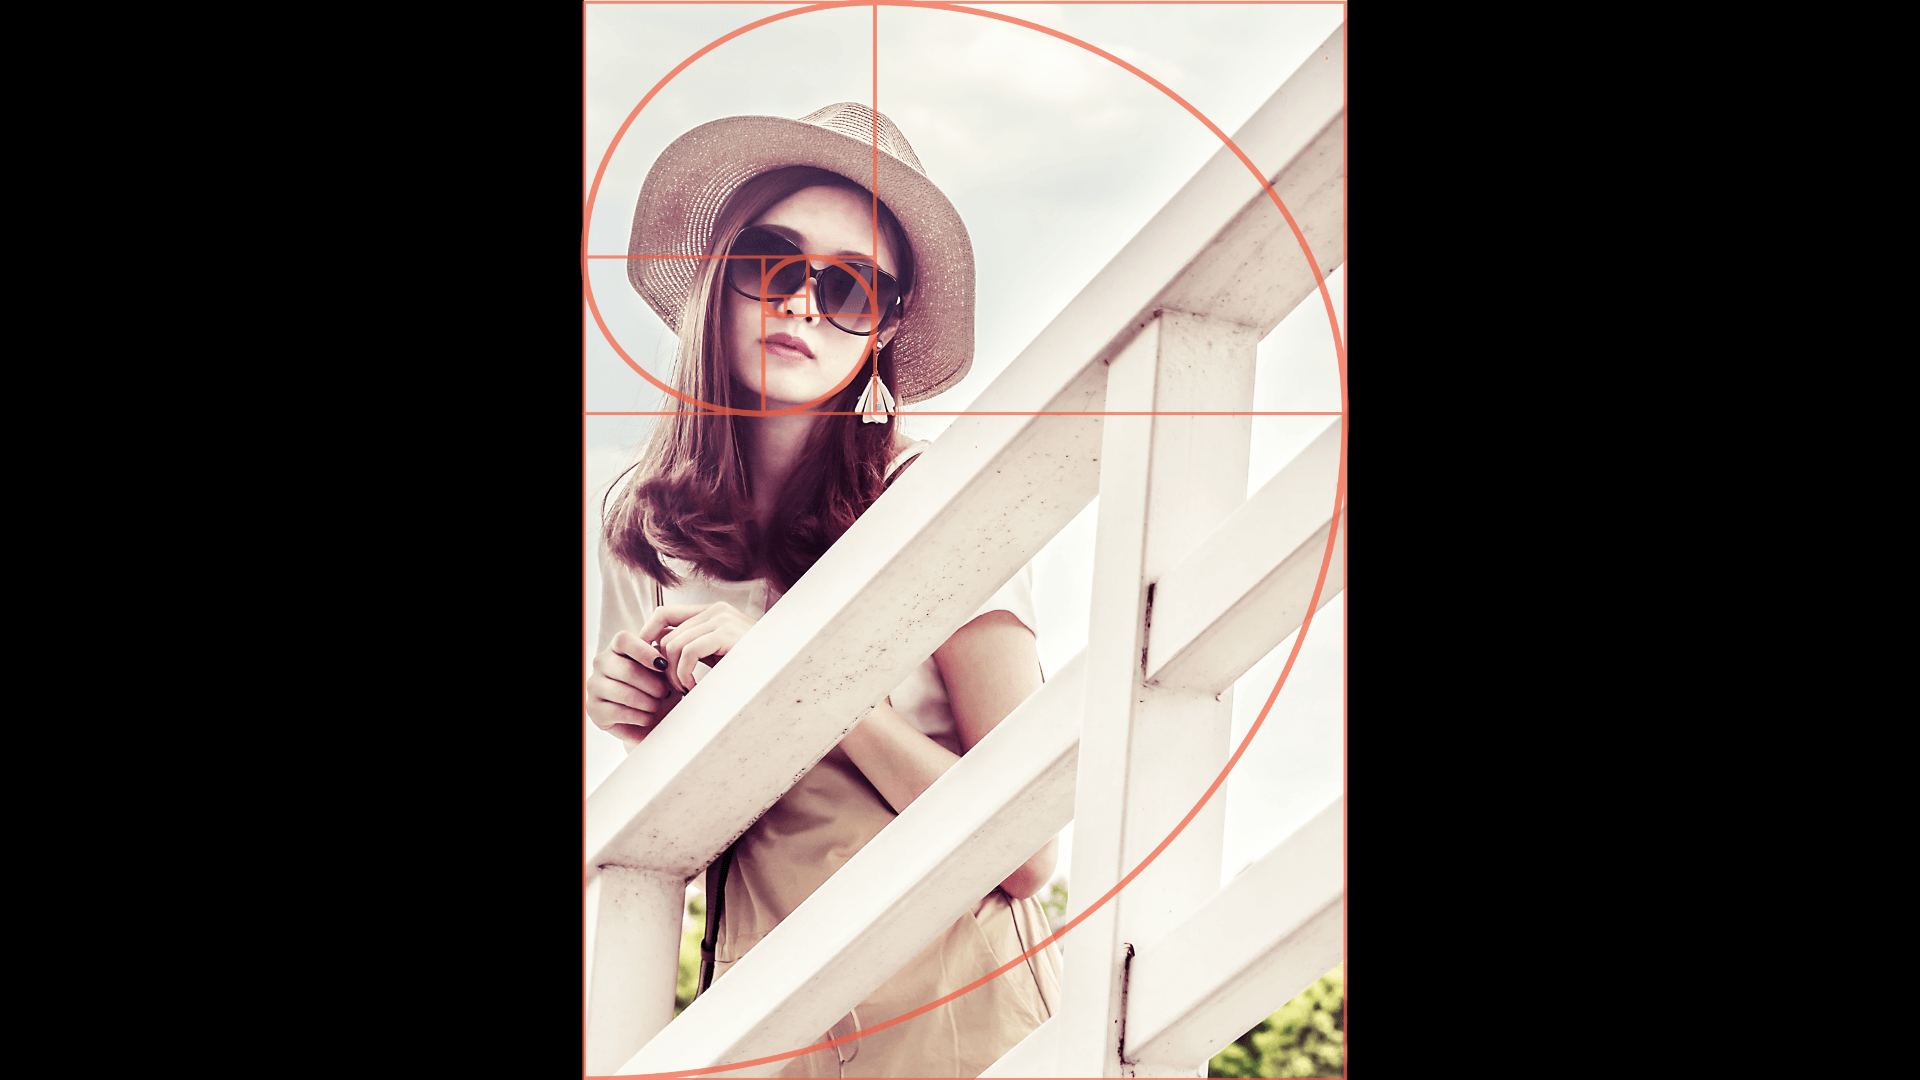 composition photoshop golden ratio